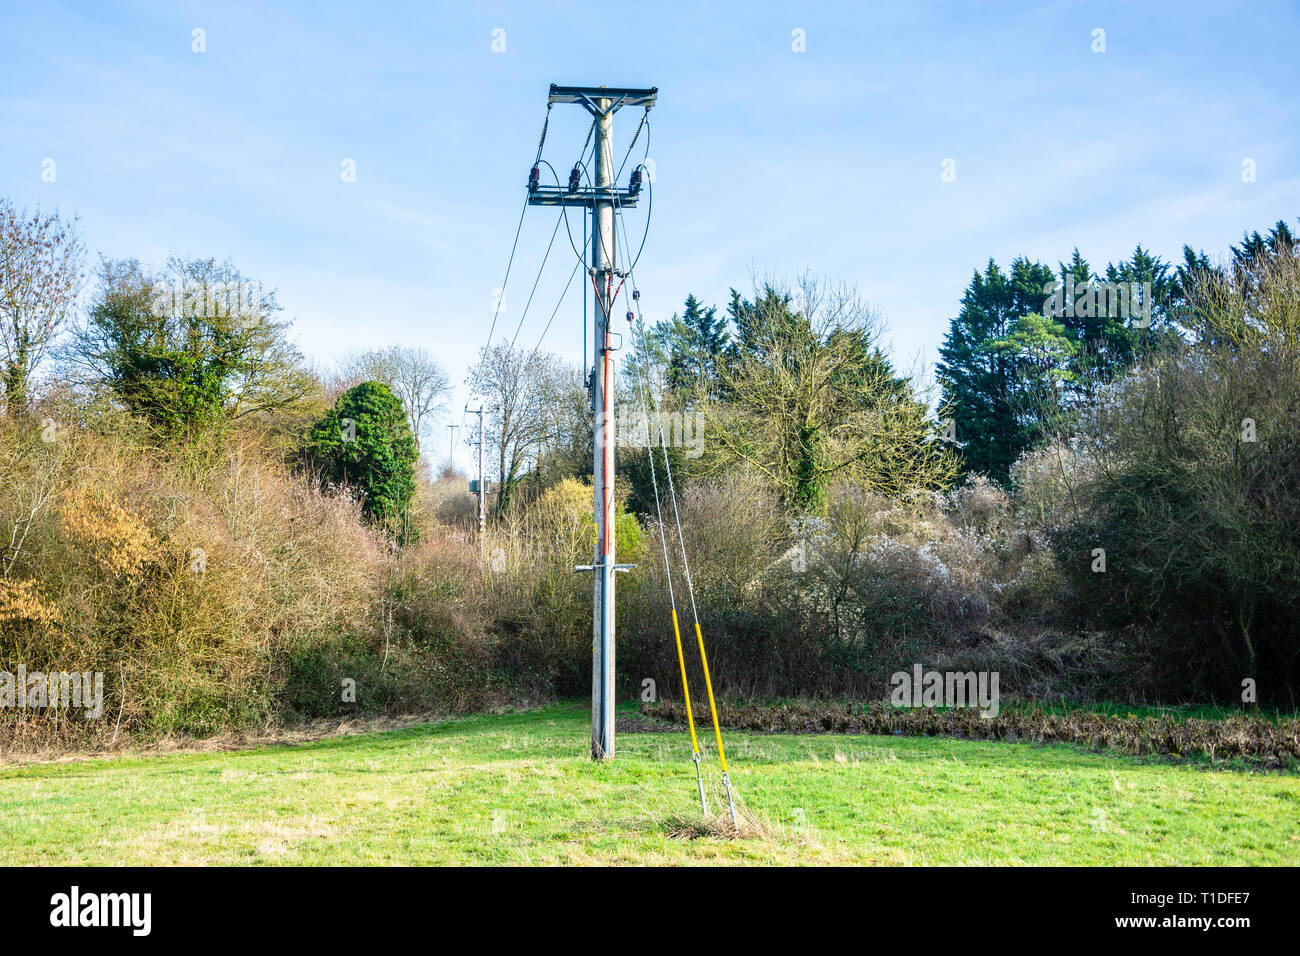 The end of a row of wooden powerline poles with lines running into the ground after being carried through a break in trees Stock Photo